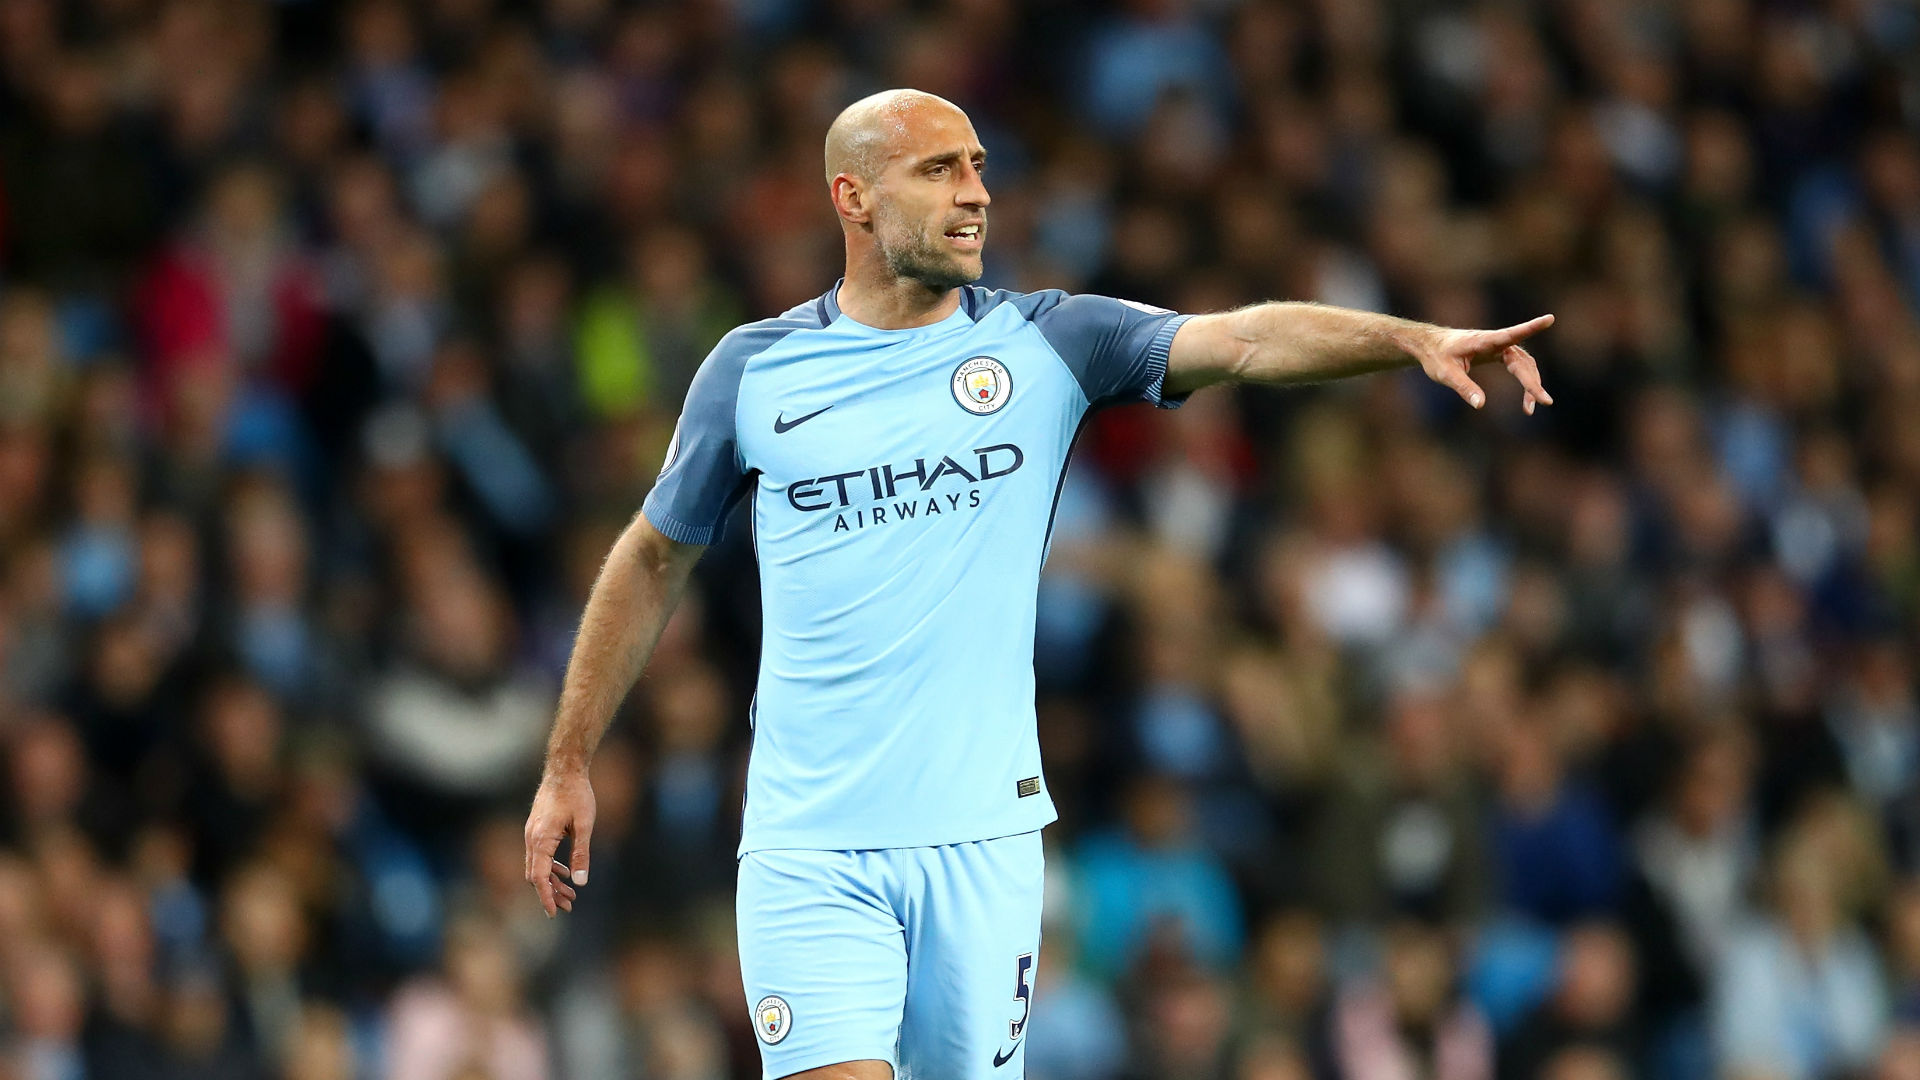 Man City says goodbye to legend Zabaleta in home farewell